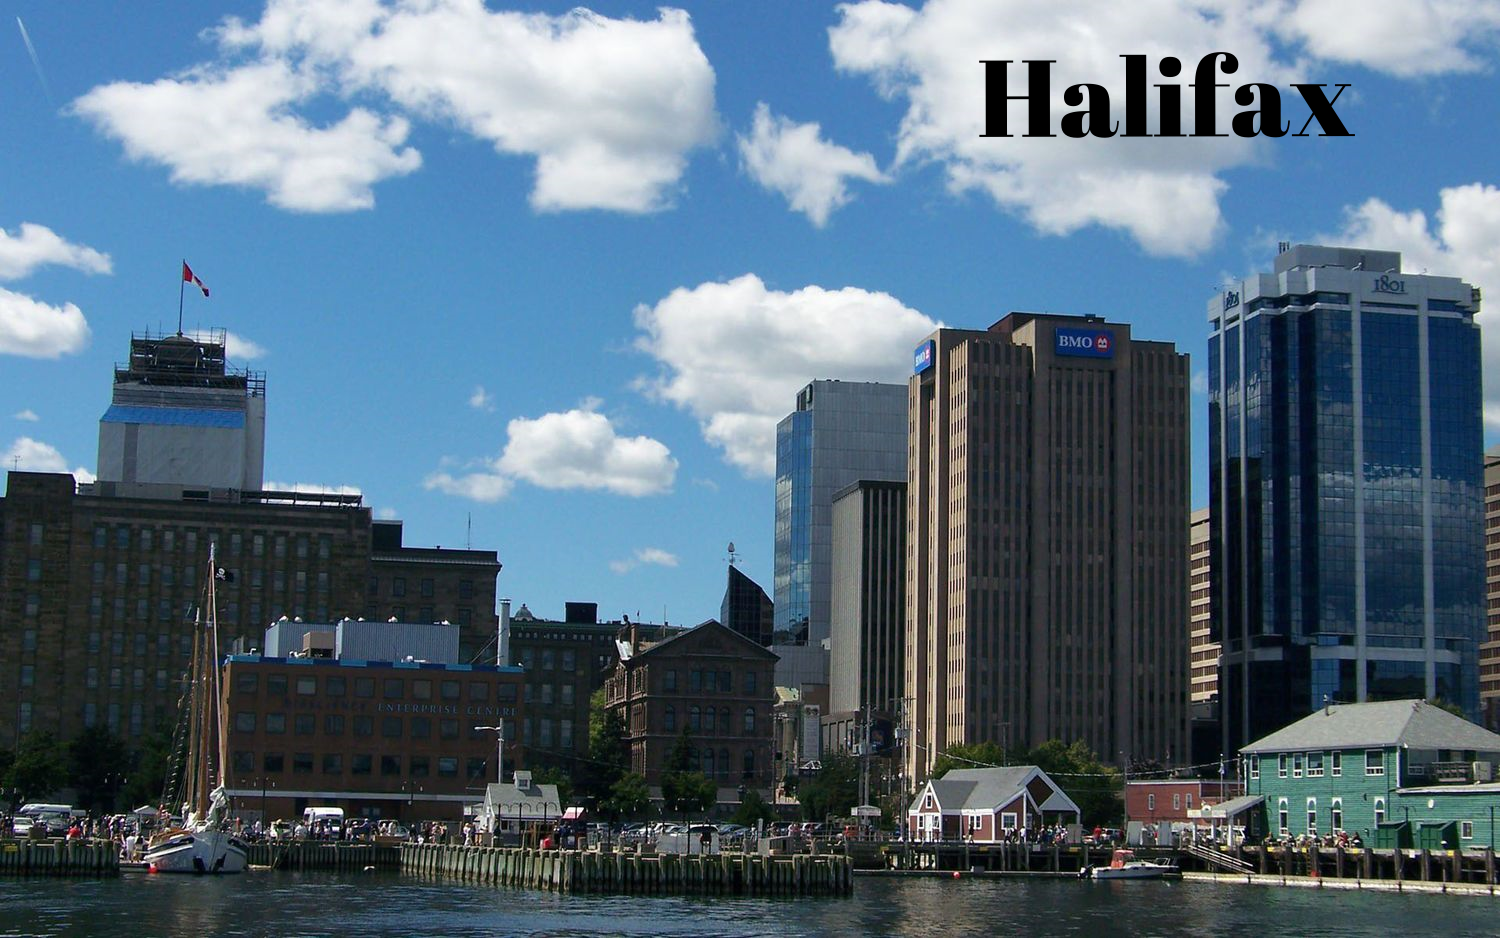 Halifax-Harbour-Halifax-Nova-Scotia-Canada-Wallpaper.jpg